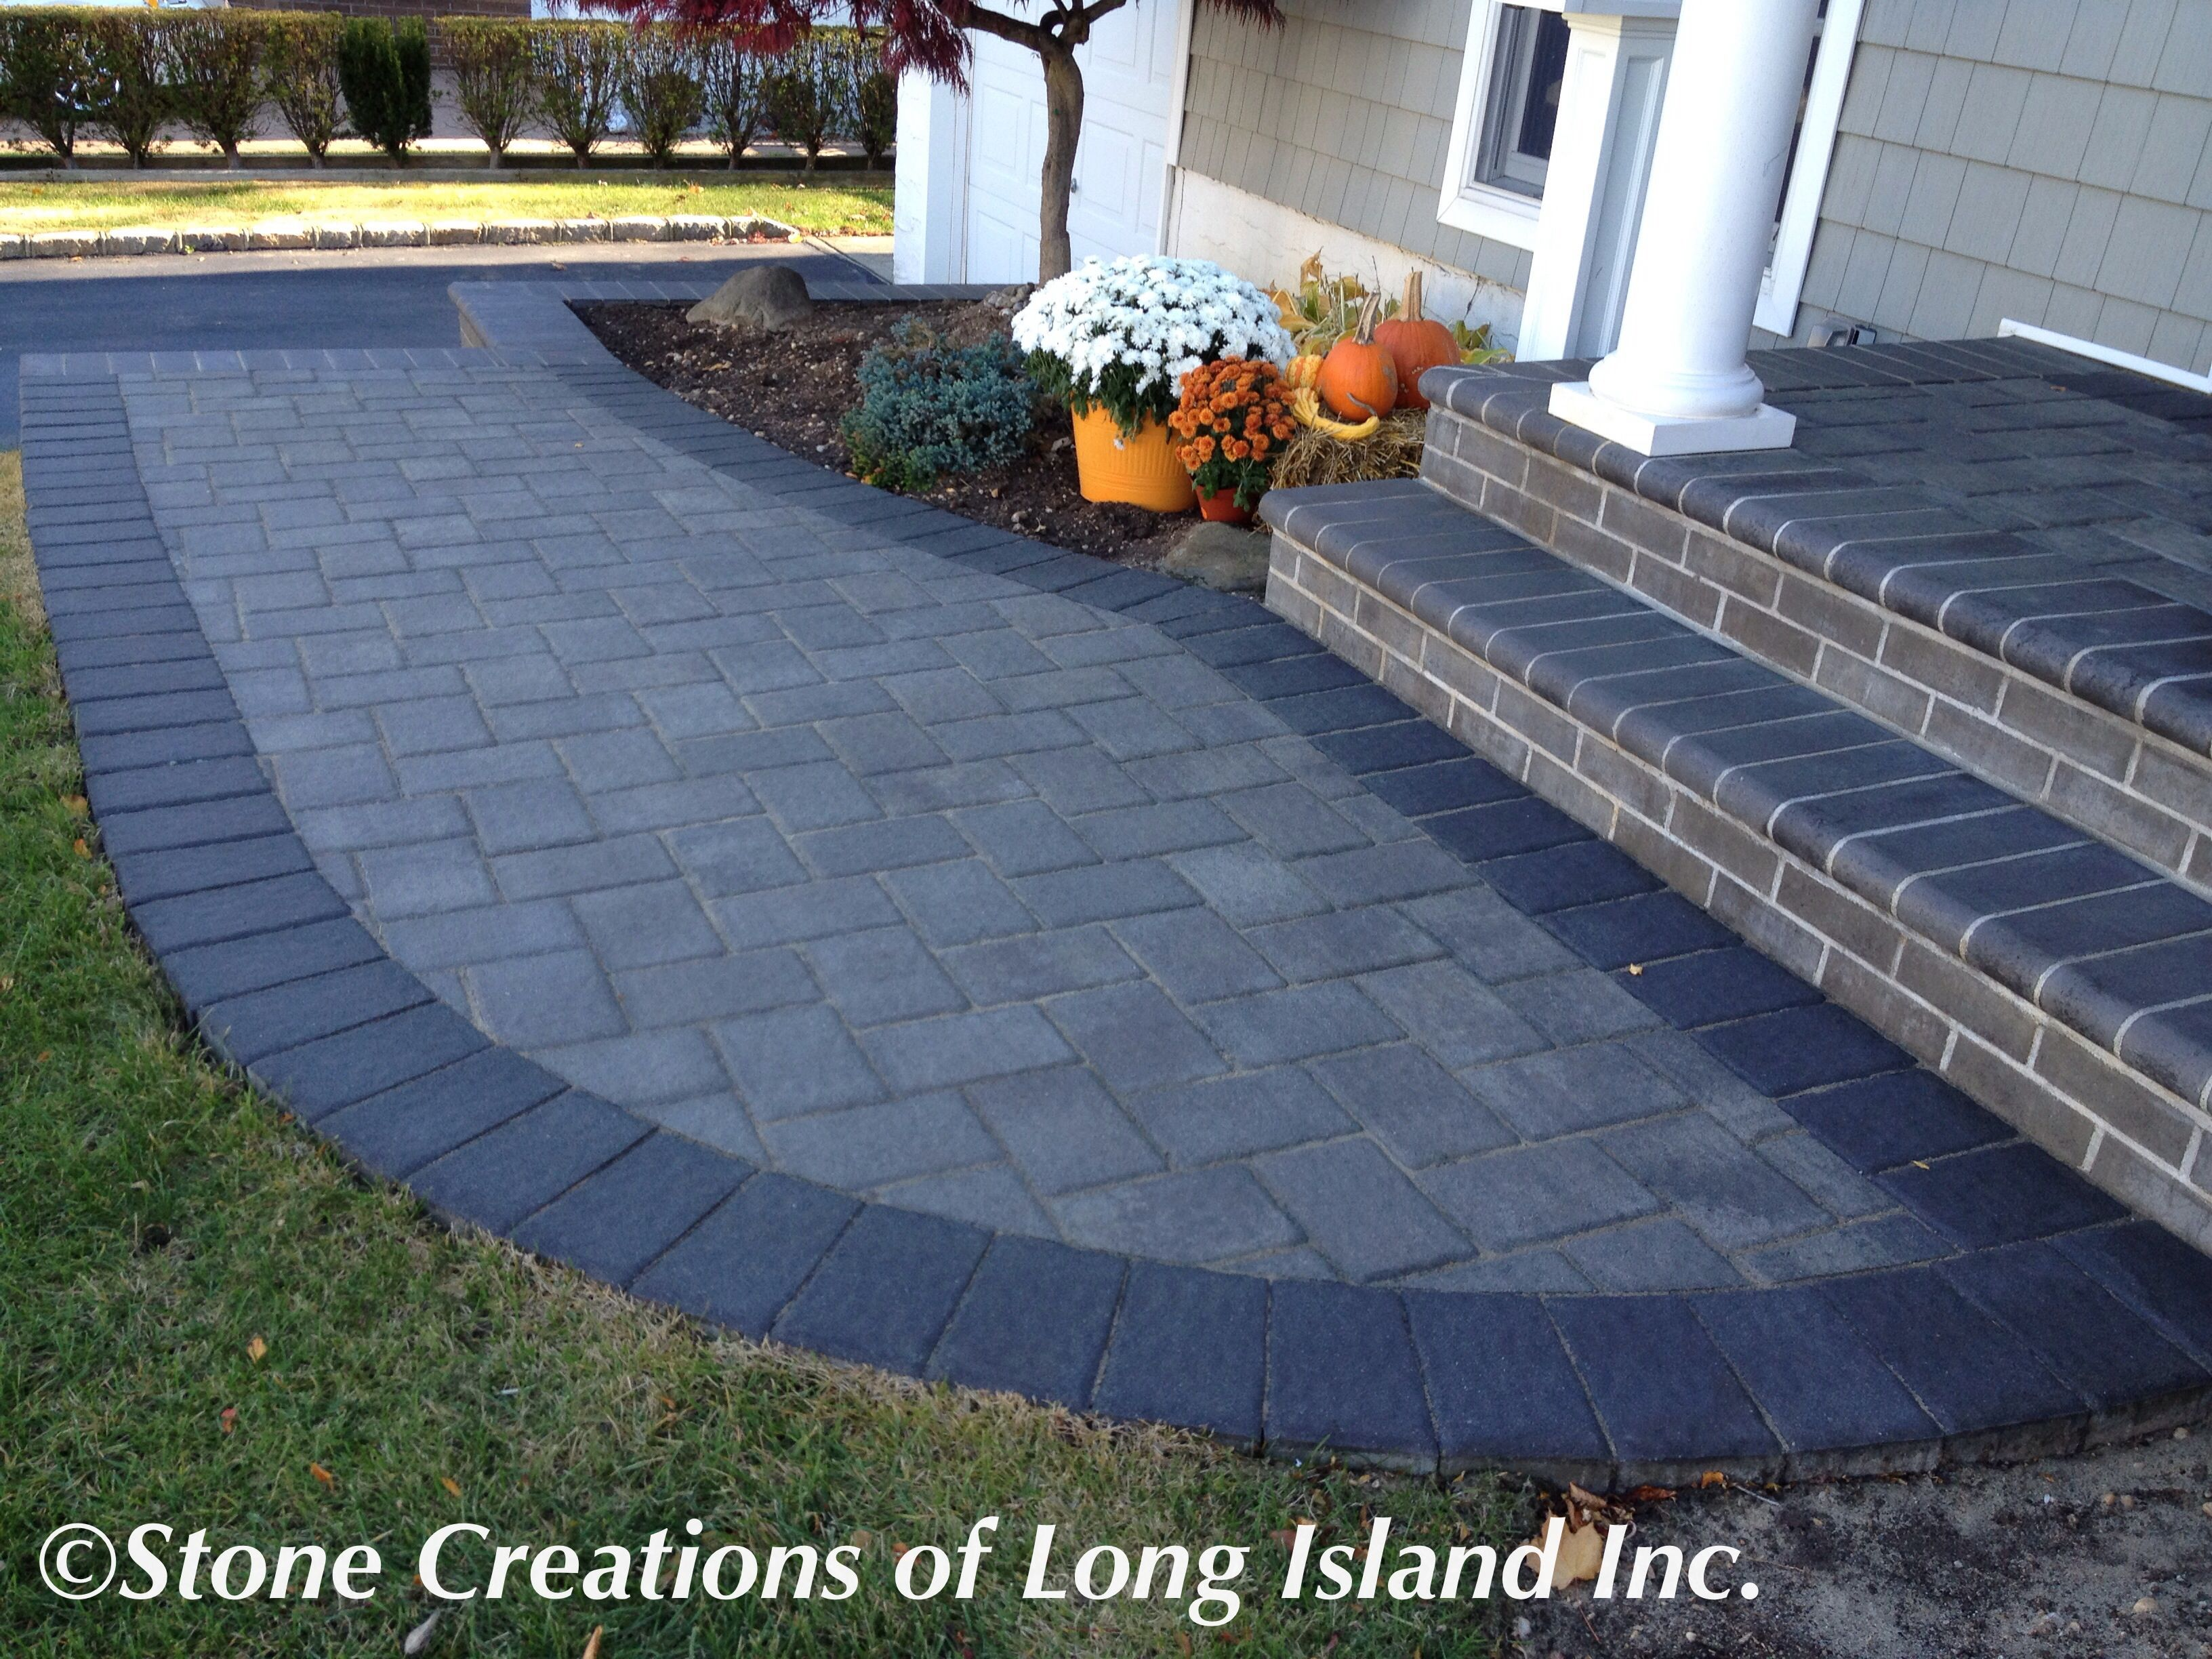 Cambridge Paving Stones Onyx/Natural with Onyx Border Long Island's